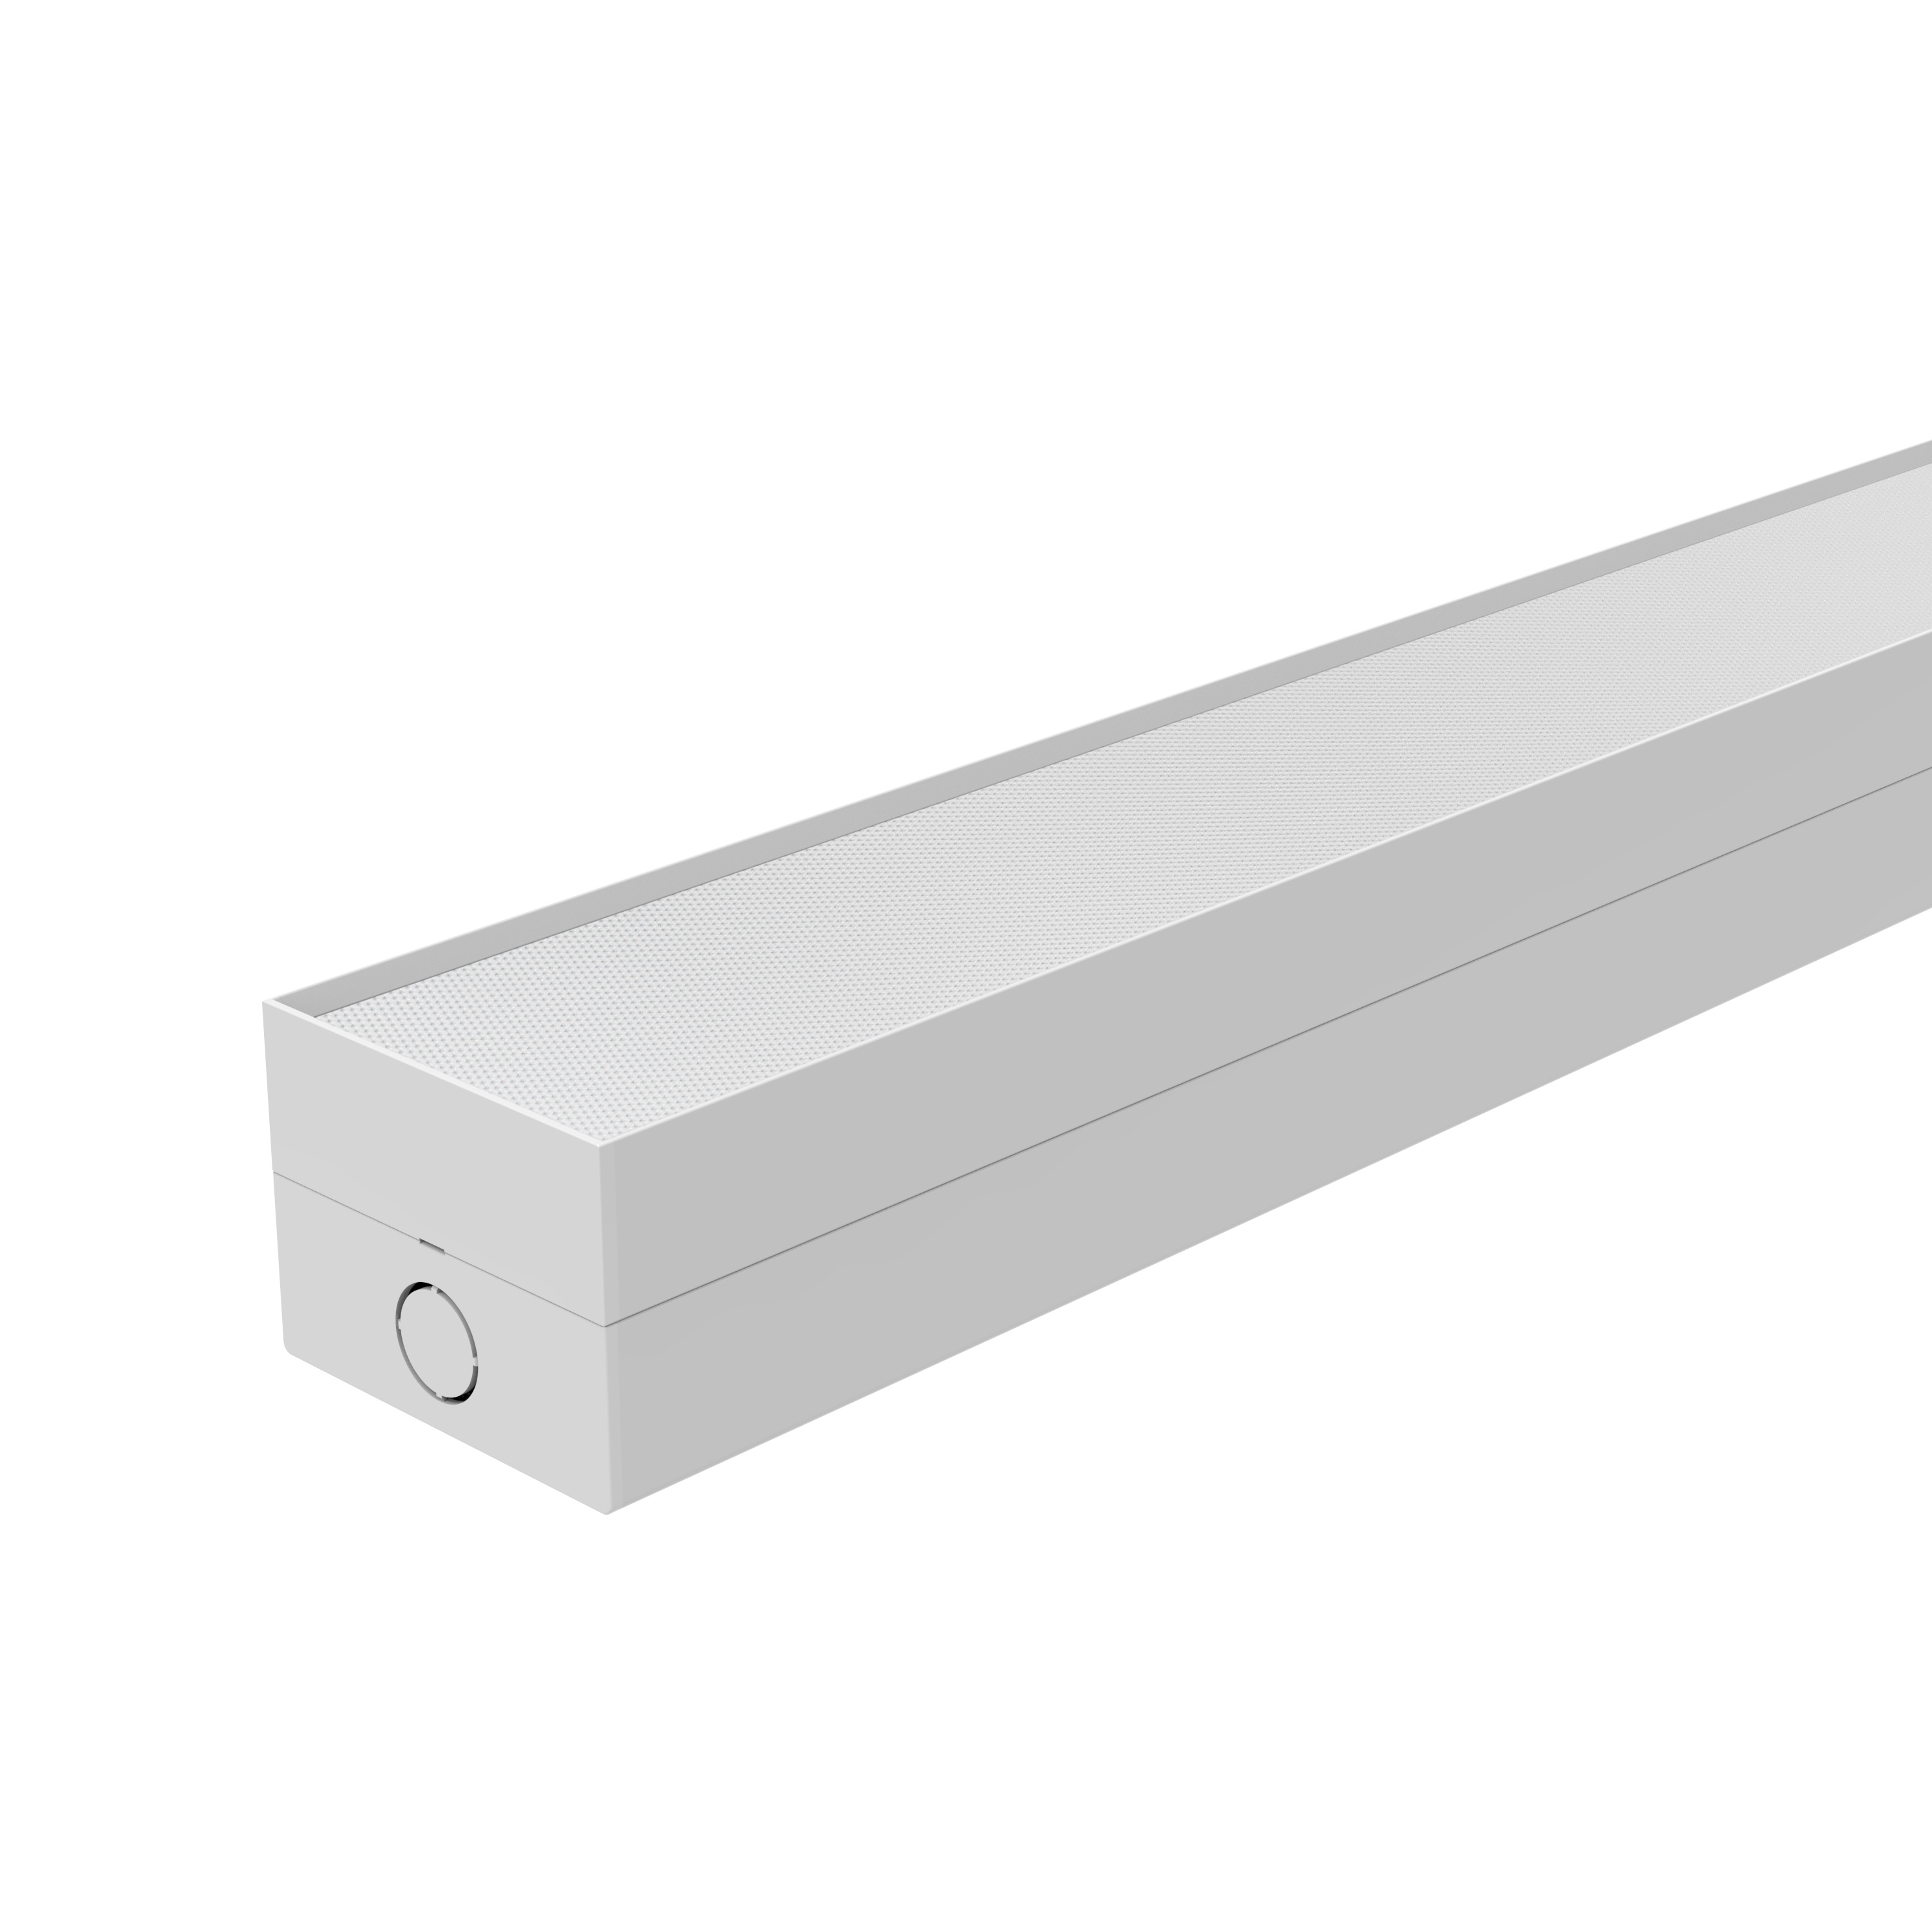 Linear Light: W80mm Gentle Batten